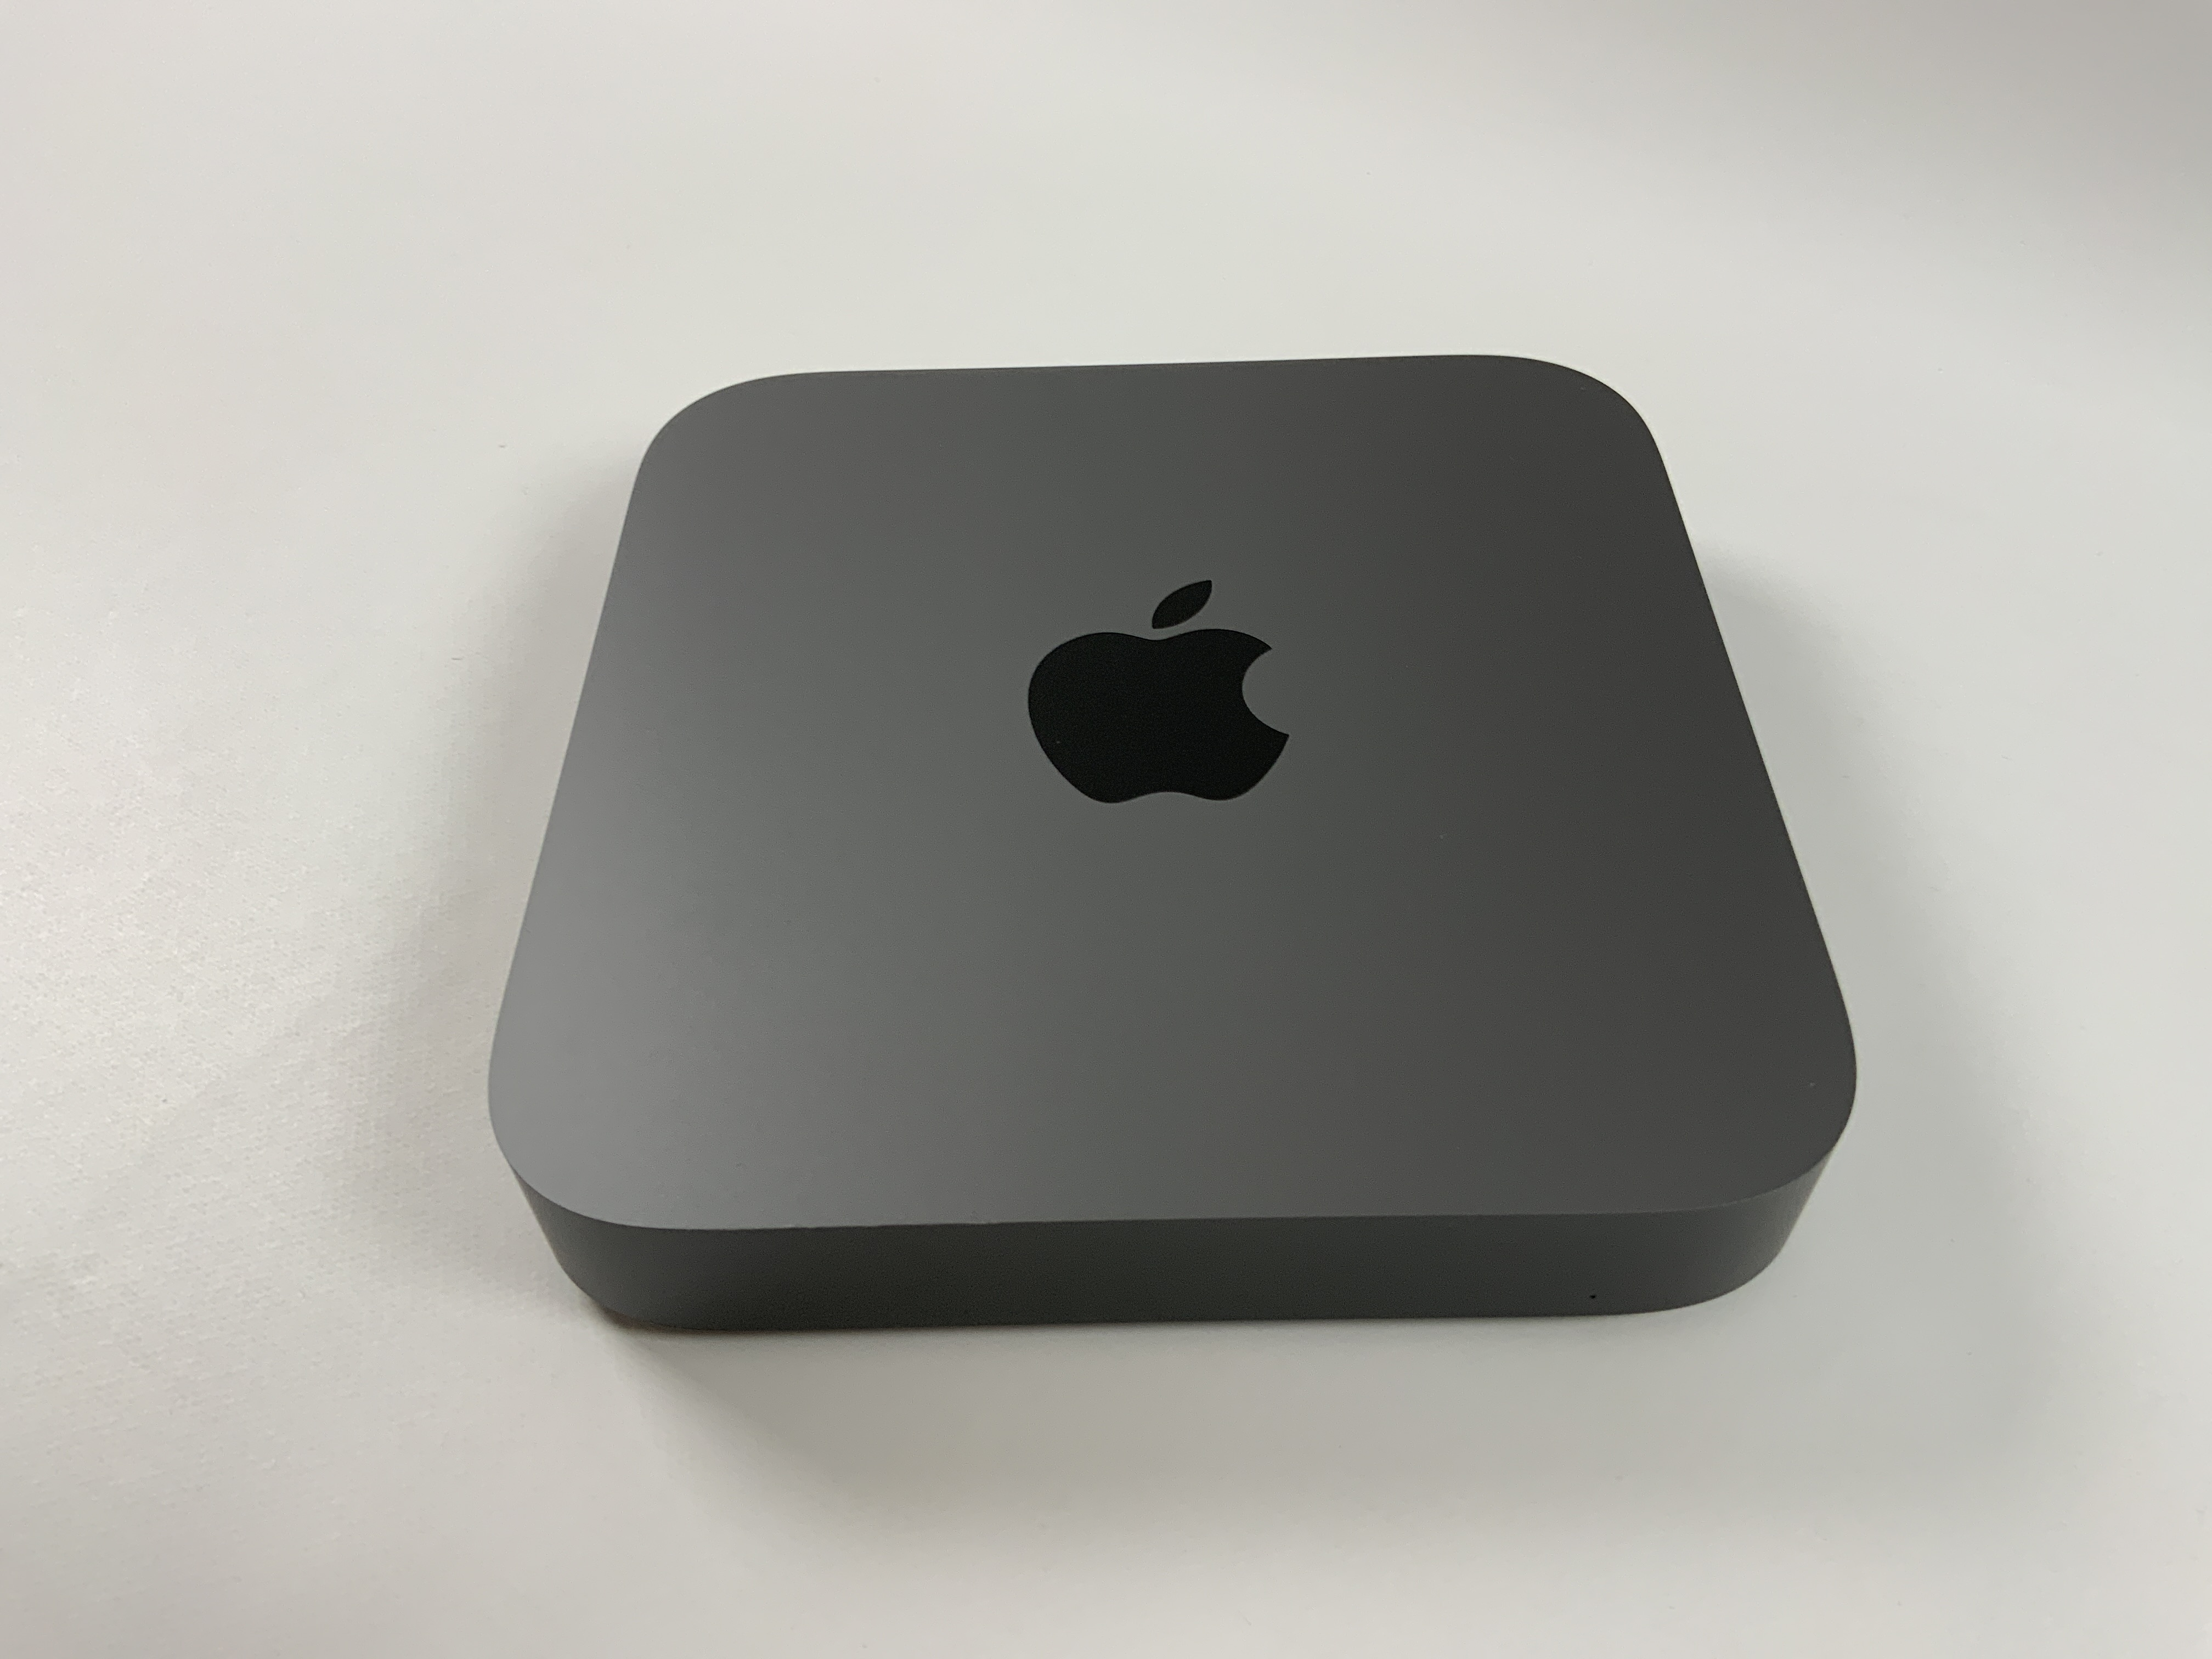 Mac Mini Late 2018 (Intel Quad-Core i3 3.6 GHz 8 GB RAM 256 GB SSD), Intel Quad-Core i3 3.6 GHz, 8 GB RAM, 256 GB SSD, Afbeelding 1